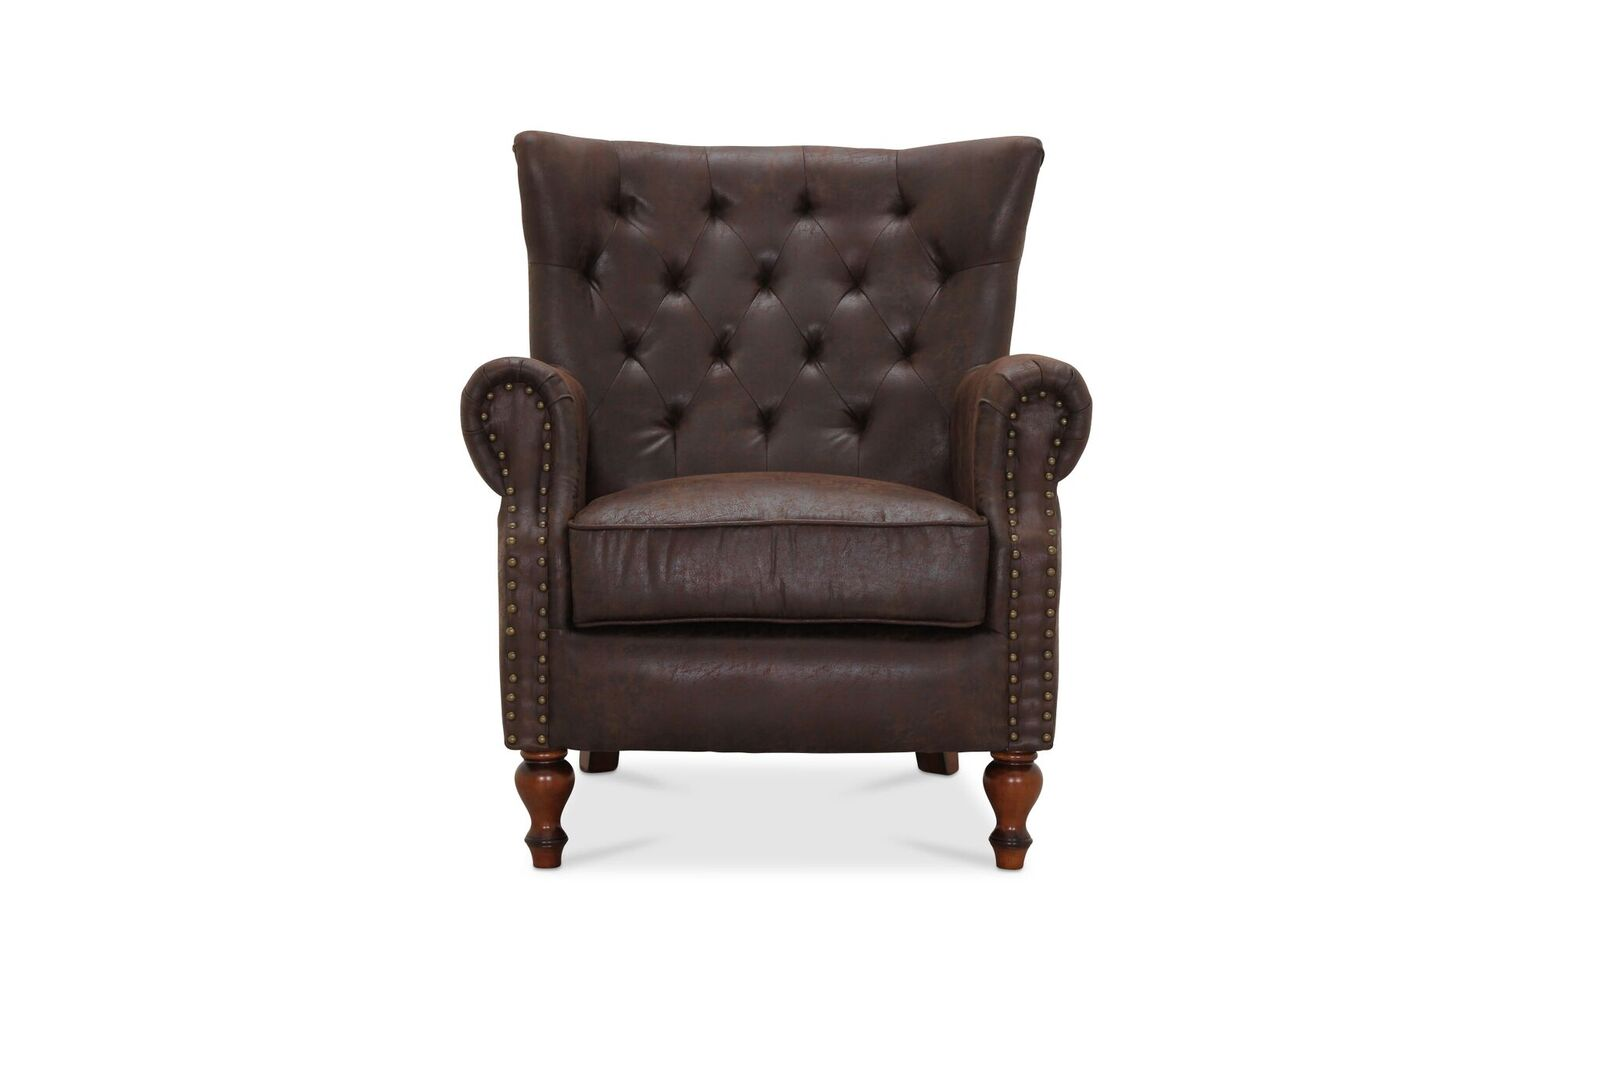 Image of   HAGA London chesterfield lænestol - brun læder PU